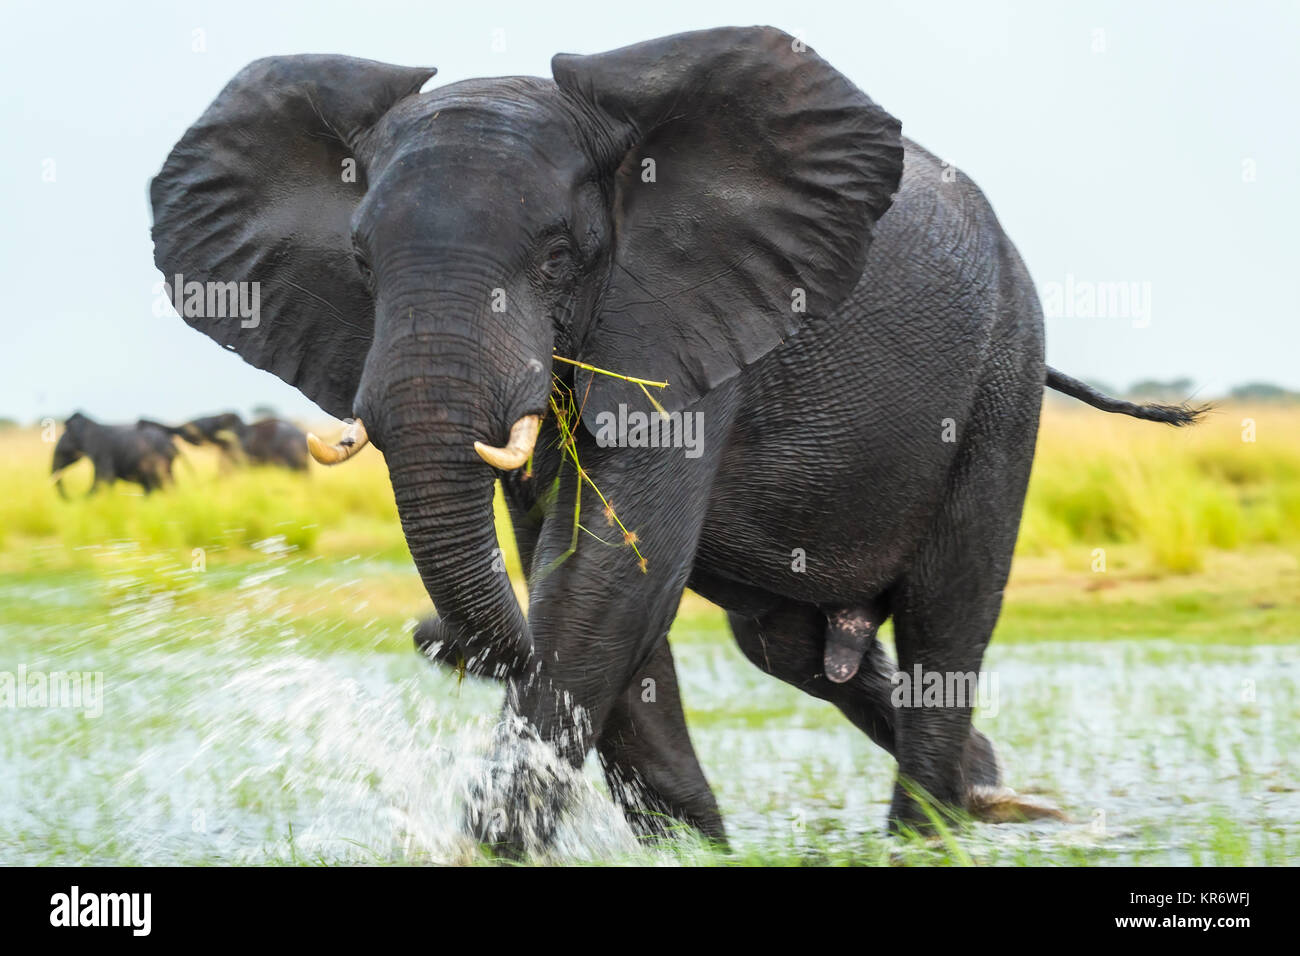 African elephant (Loxodonta africana) wading through a watering hole, eating grass. - Stock Image